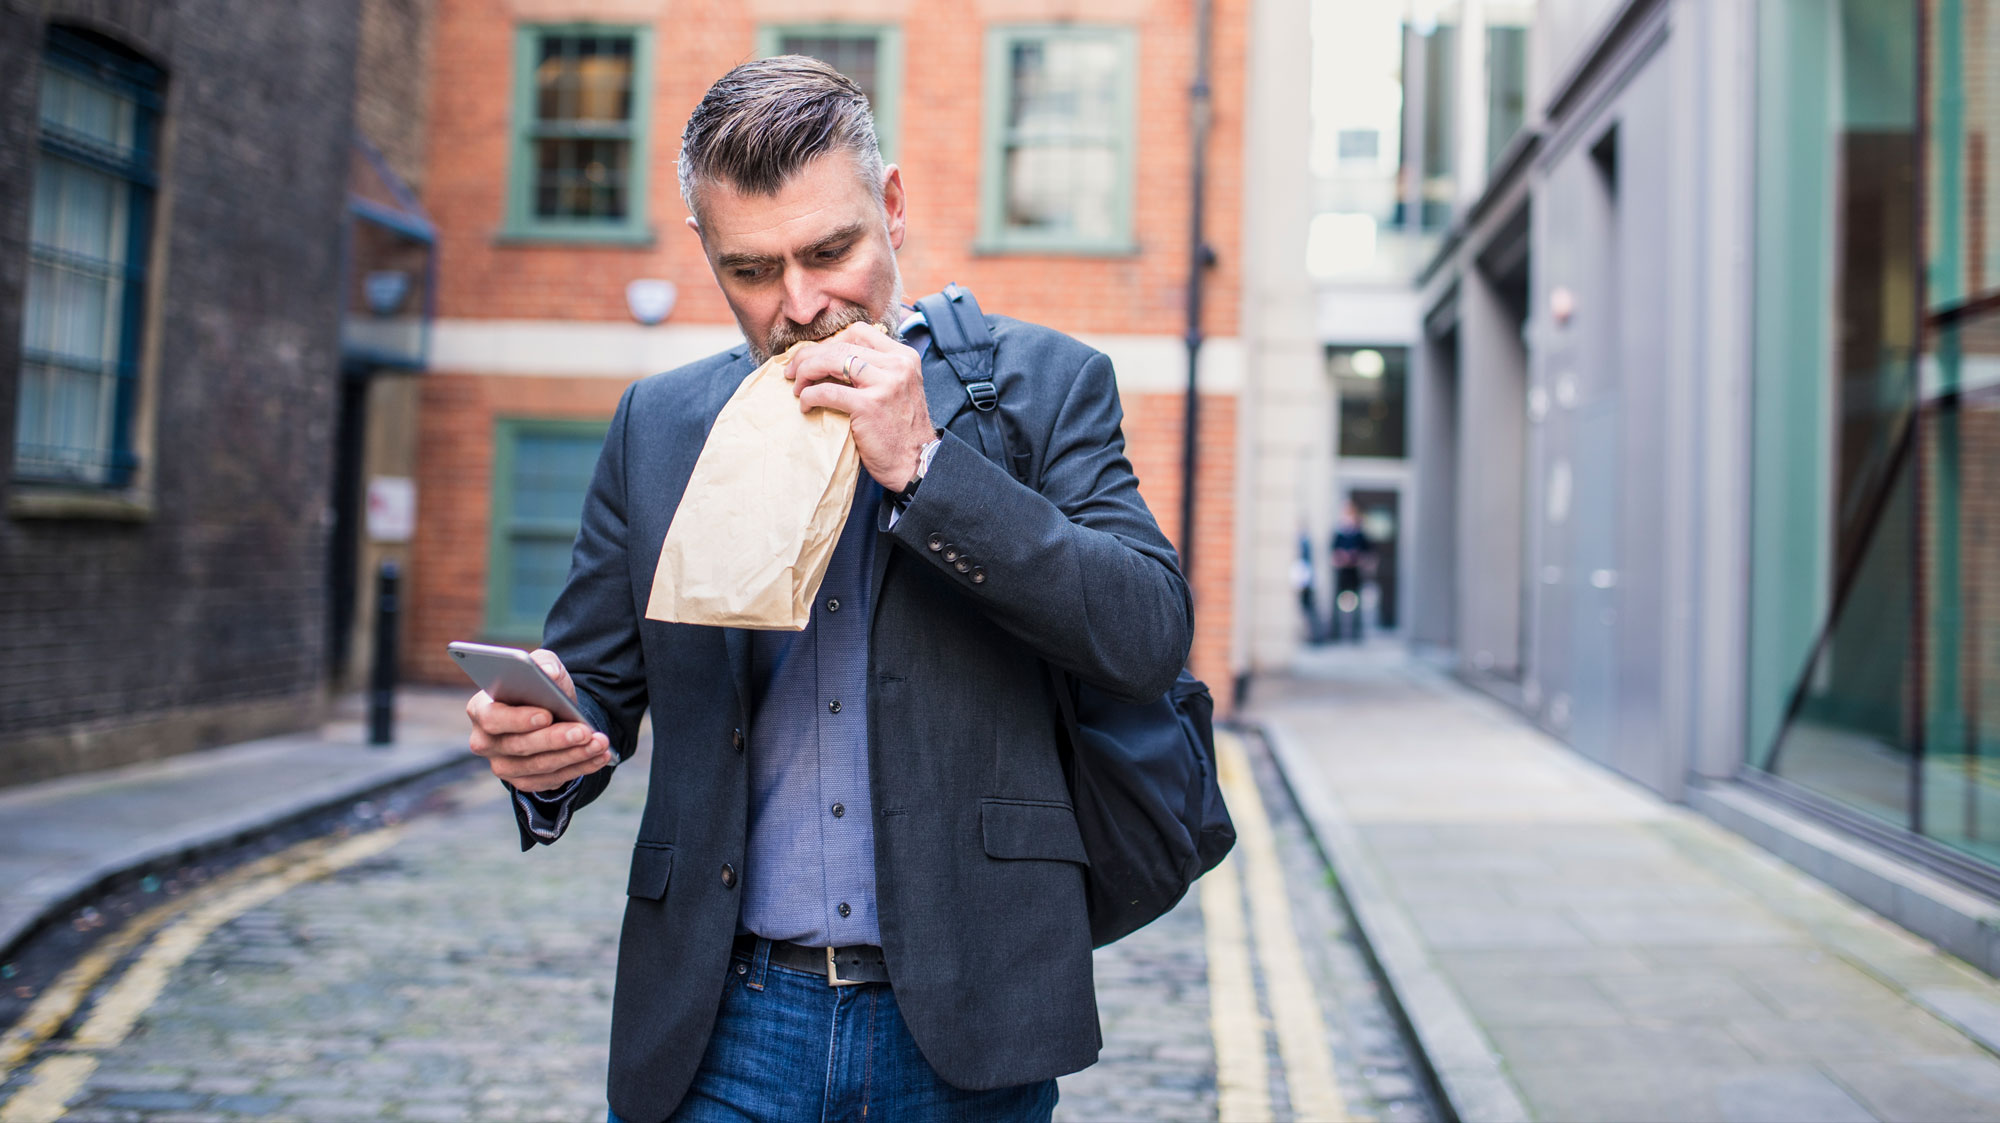 Man walking, eating and looking at his phone